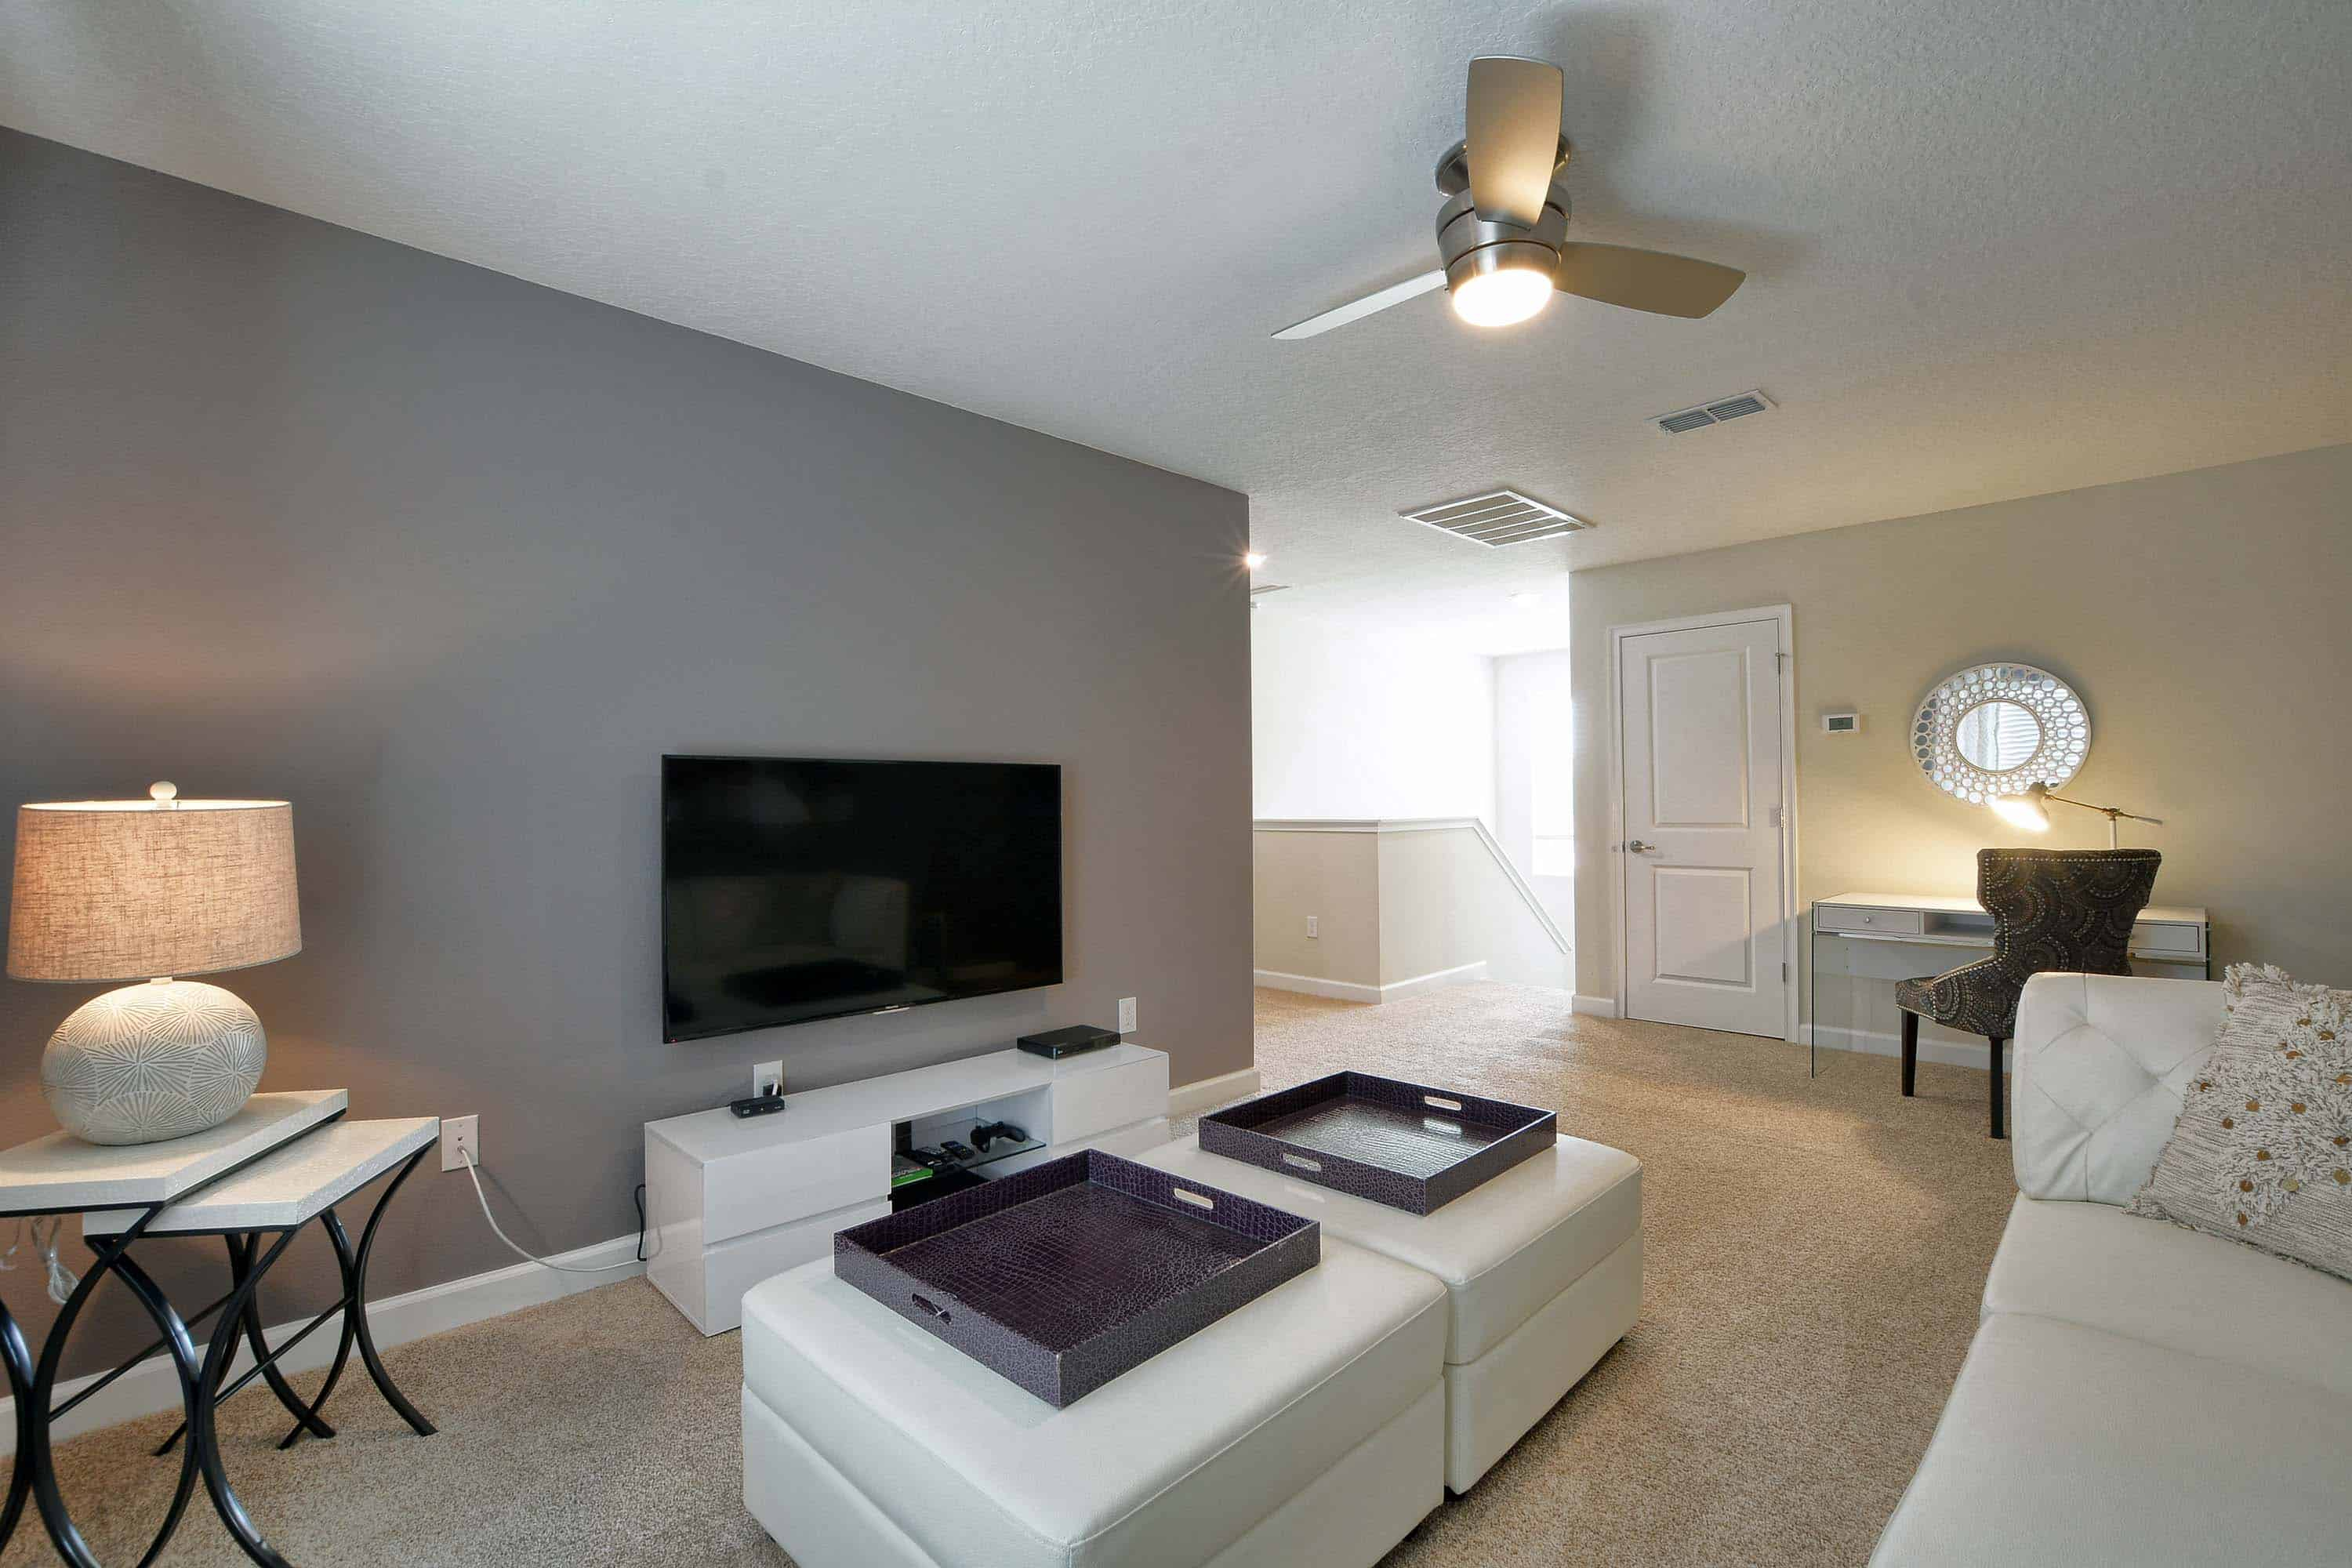 148a930d-32-upstairsfamilyroom2